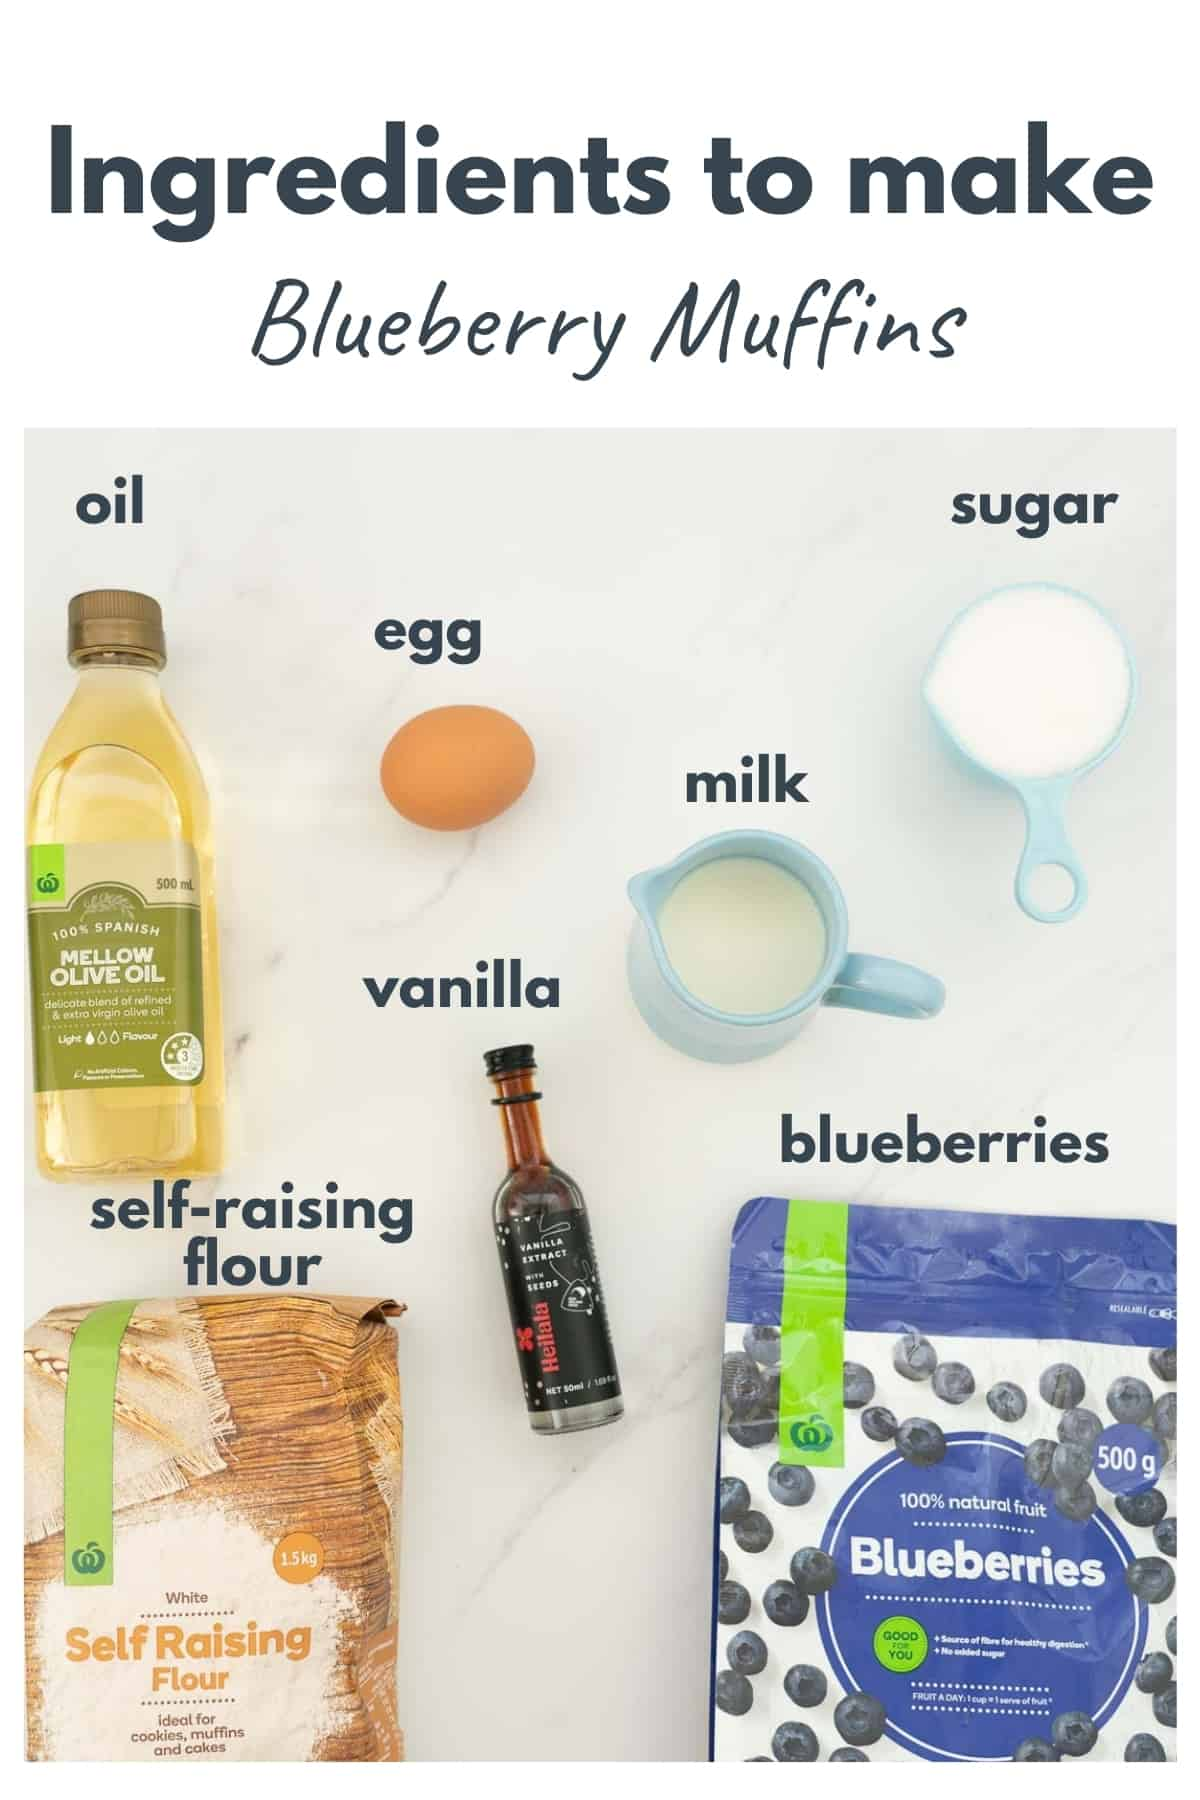 The ingredients to make blueberry muffins laid out on a bench top with text overlay.